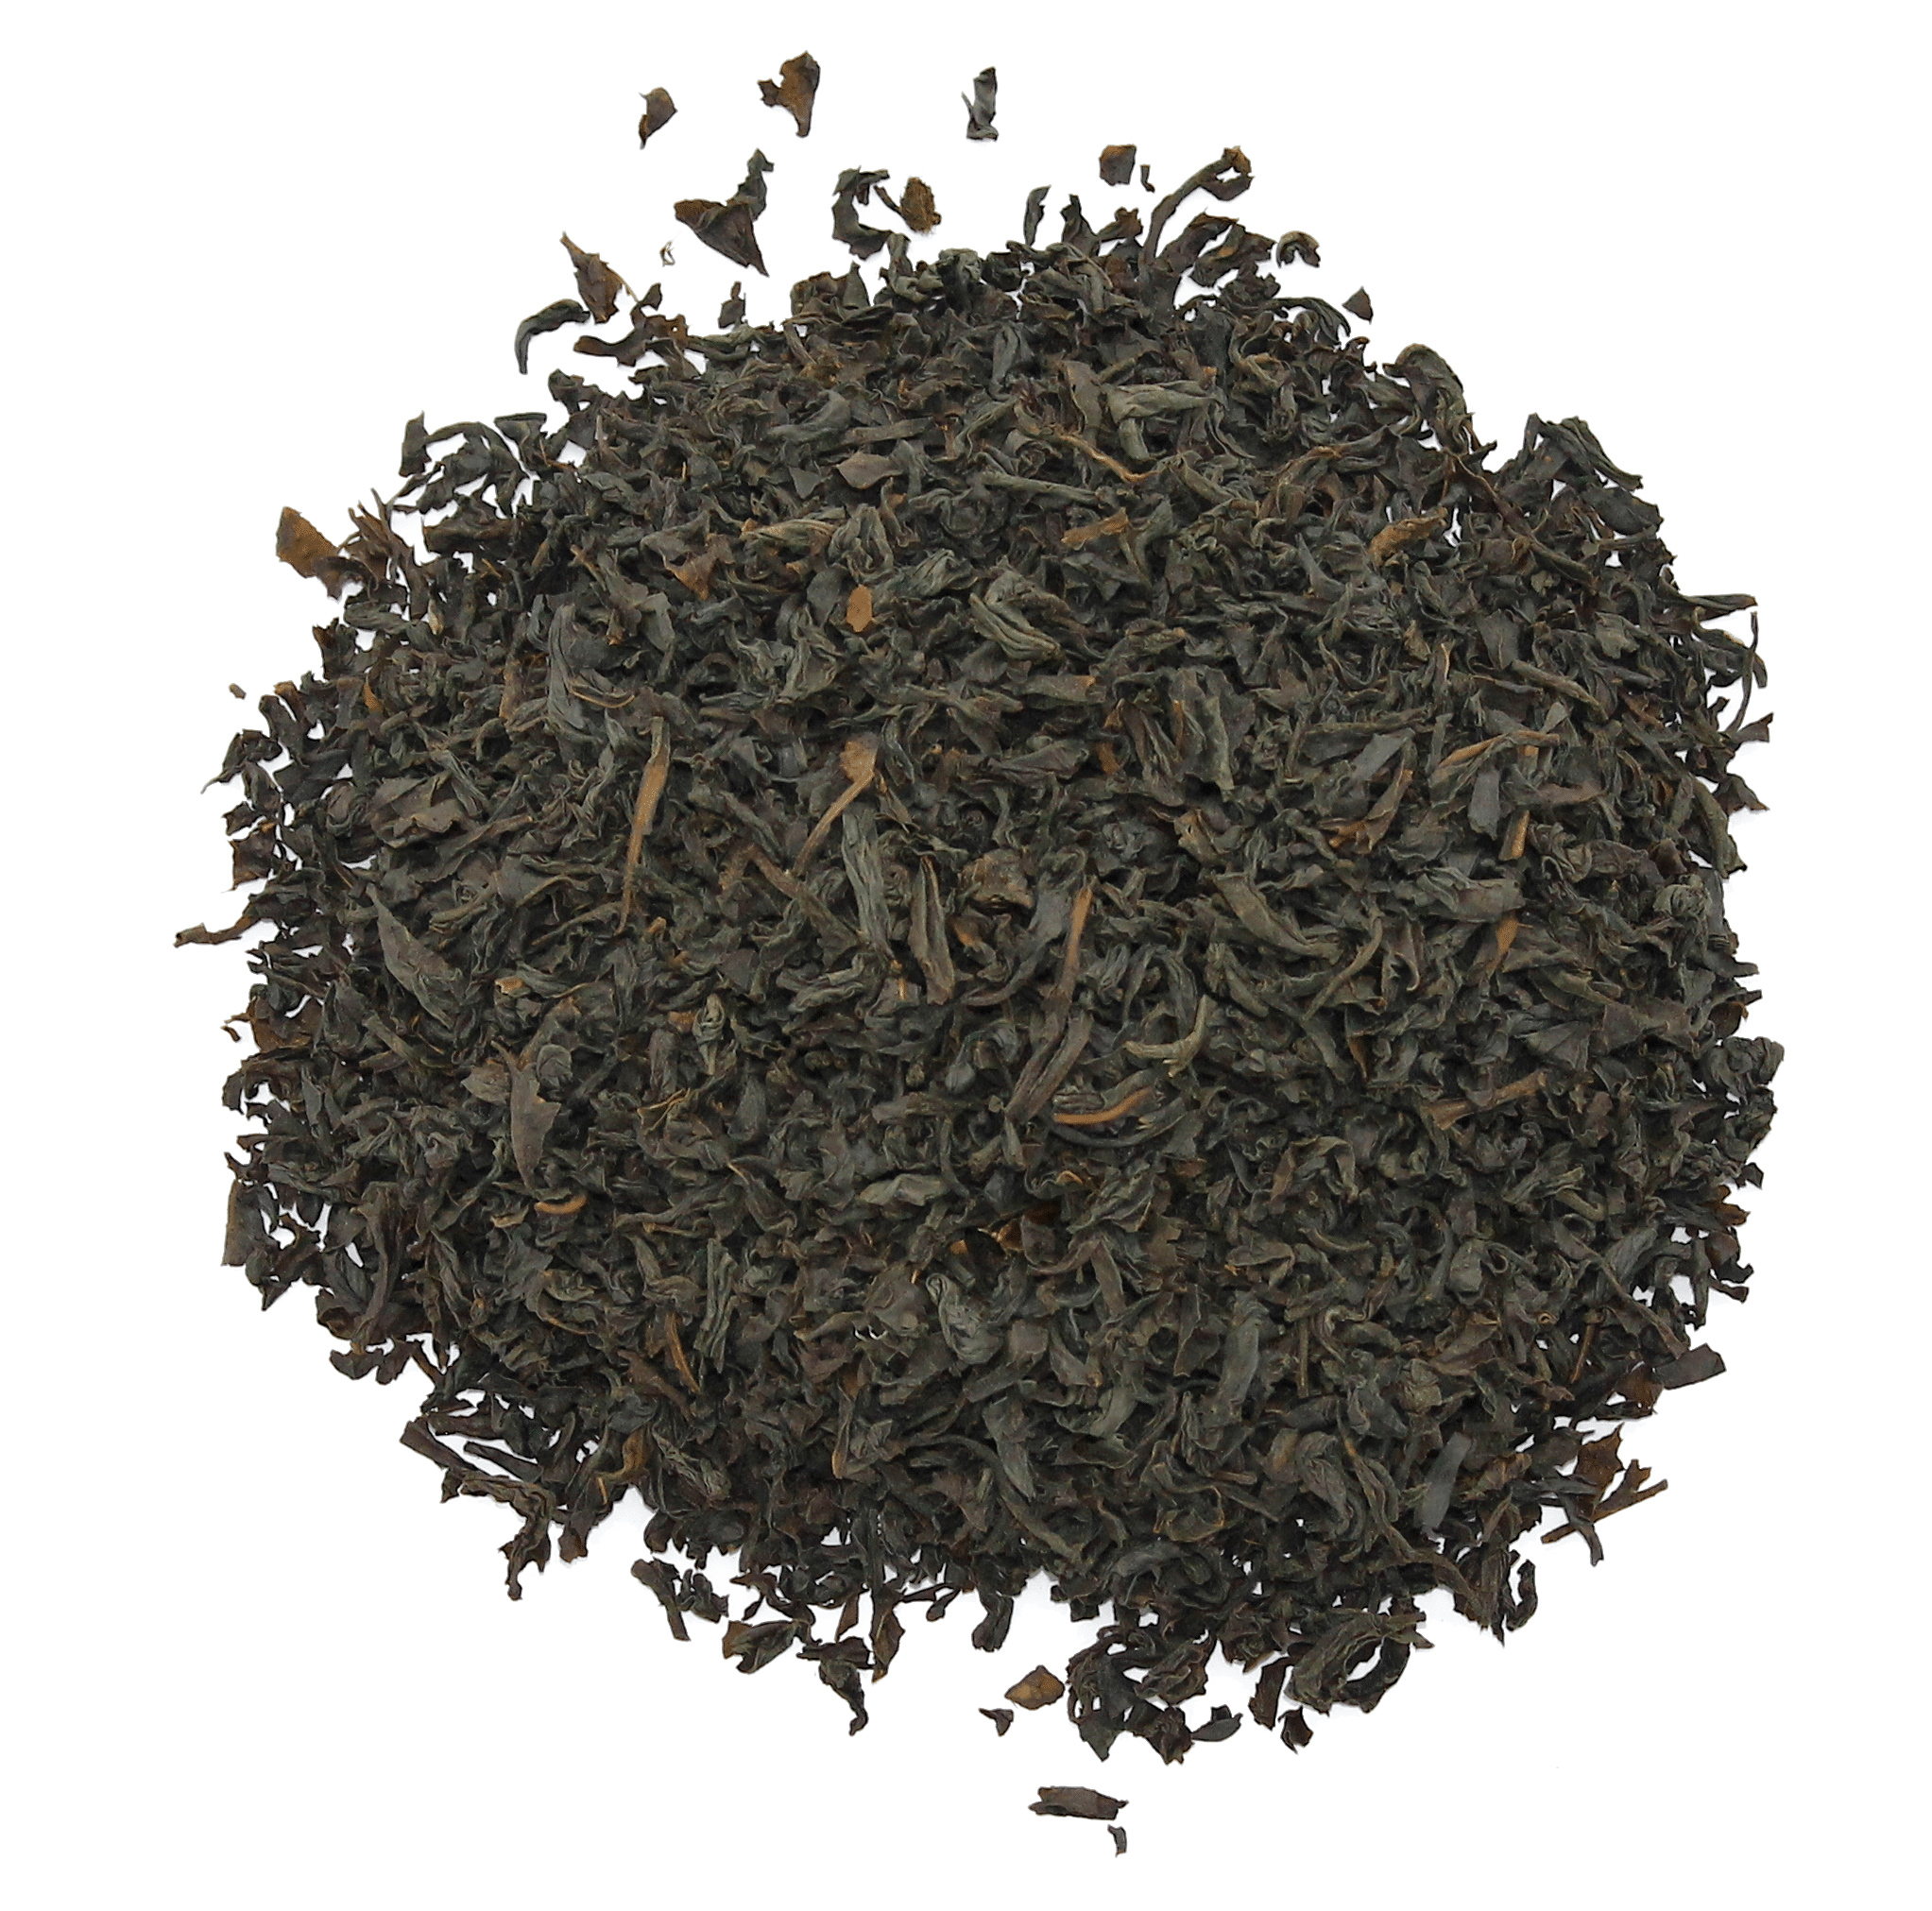 Ceylon black tea leaves